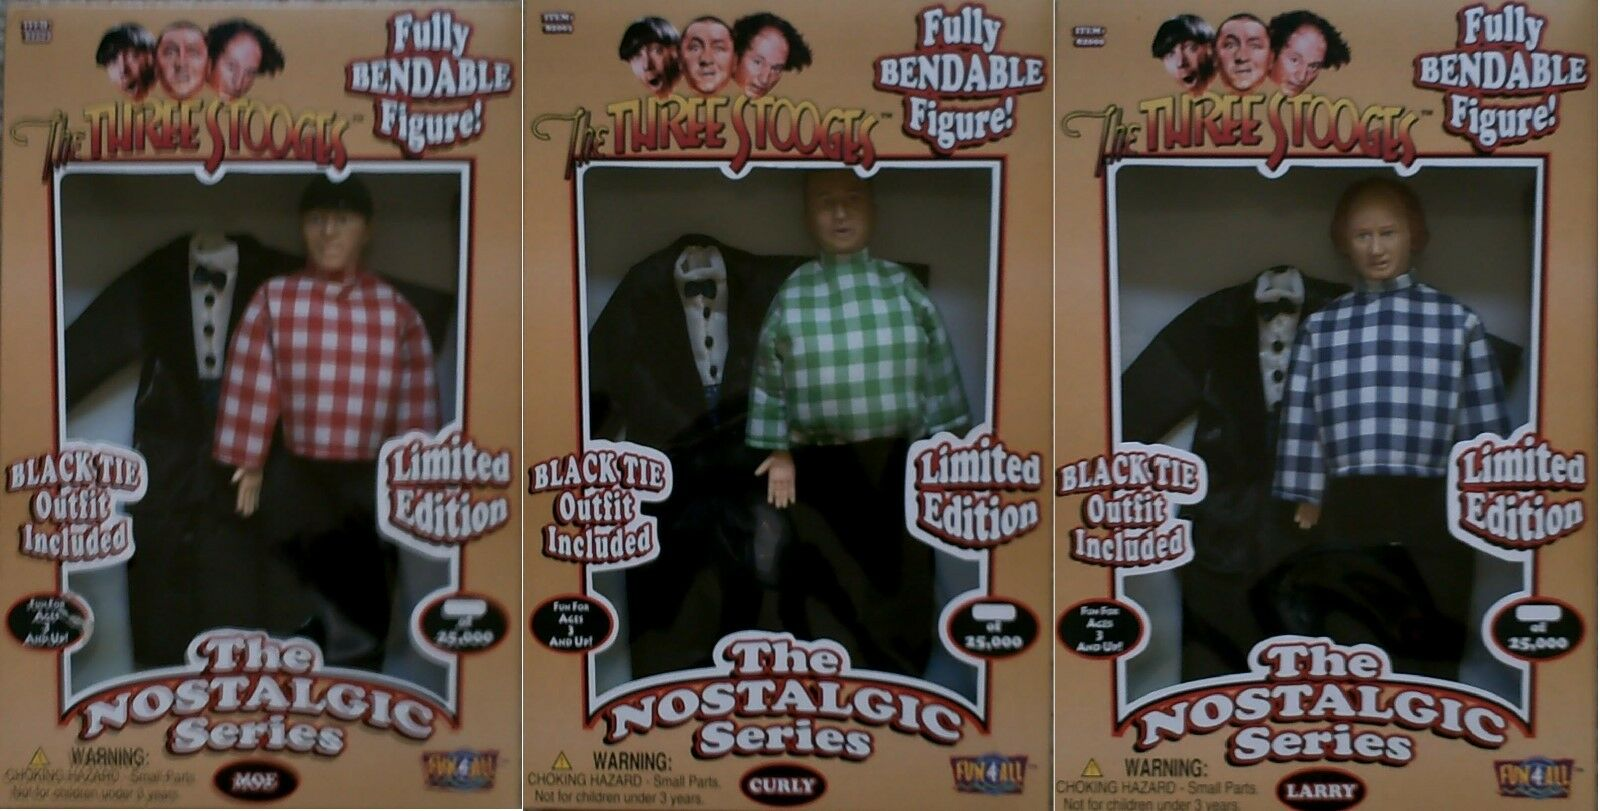 The Three Stooges Nostalgic Series Limited Edition Fully Bendable Figures Set